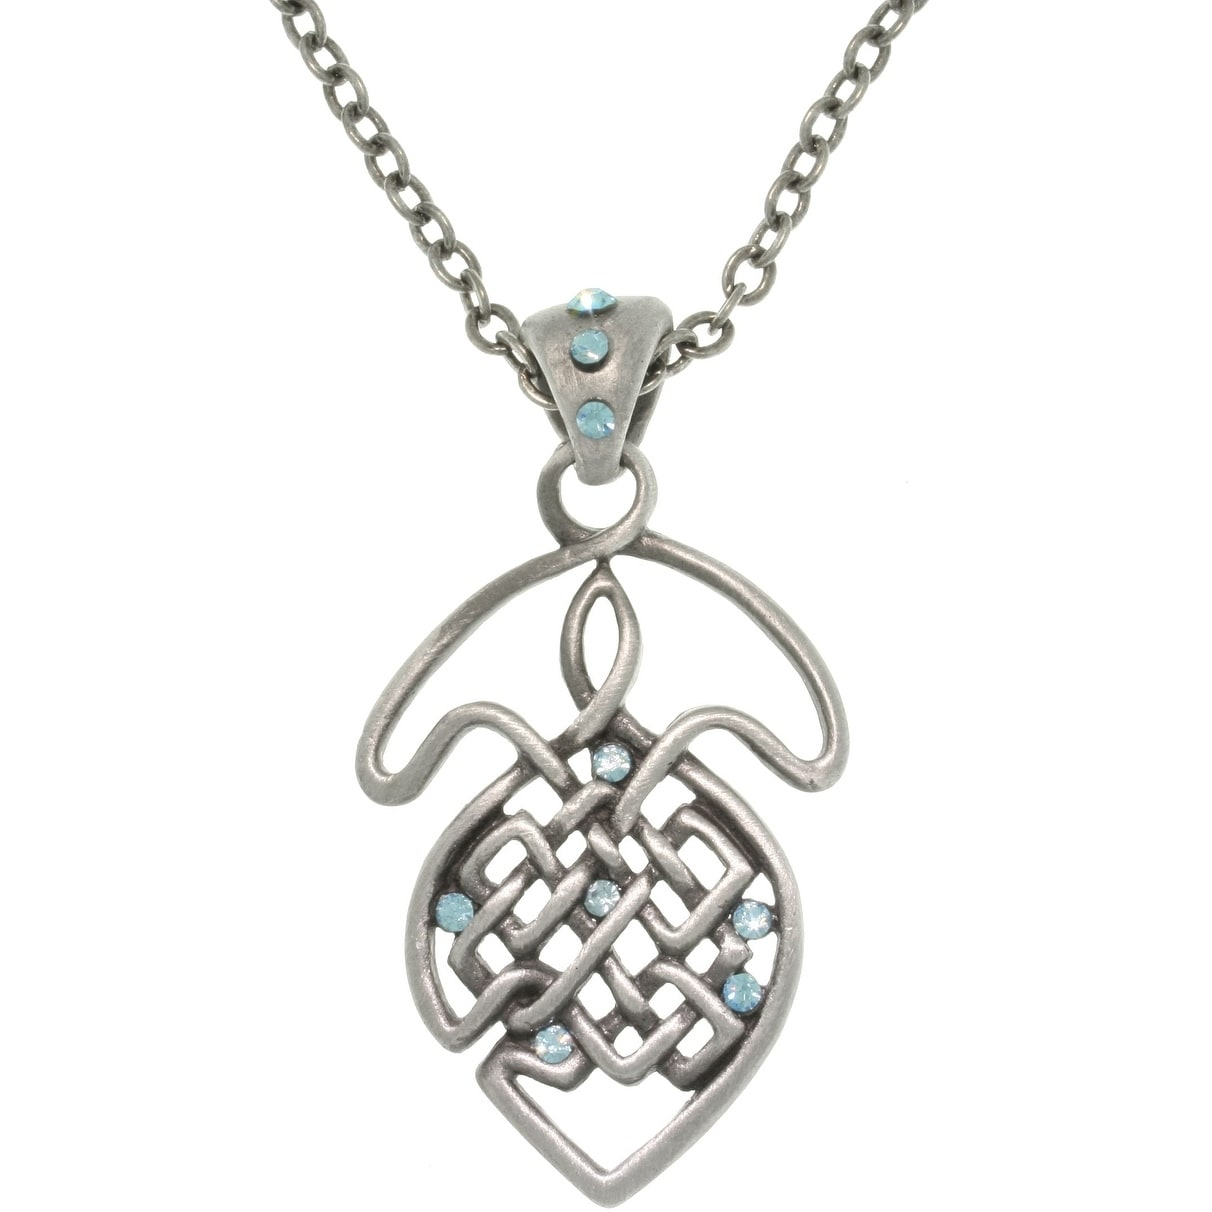 diamond kay kaystore en to mv celtic zm hover knot necklace silver accent sterling zoom